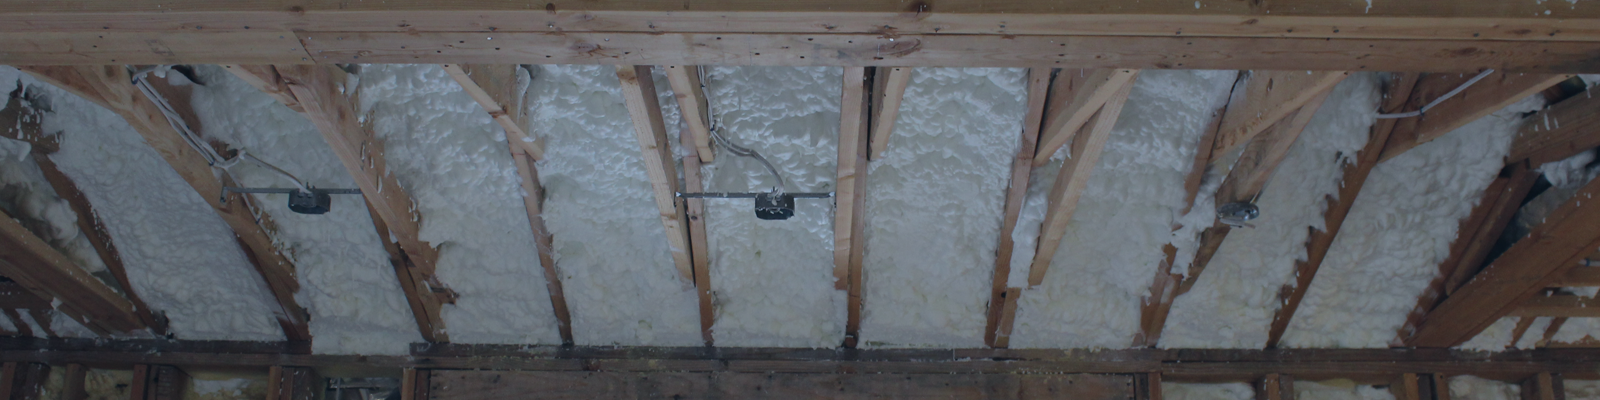 Smart Seal   Brooklyn, NY   NYC   Foam Spray Insulation   Spray Foam Insulation   Closed Cell Spray Foam Insulation   Home Insulation Installers   Home Insulation Companies   Residential Insulation Contractors  